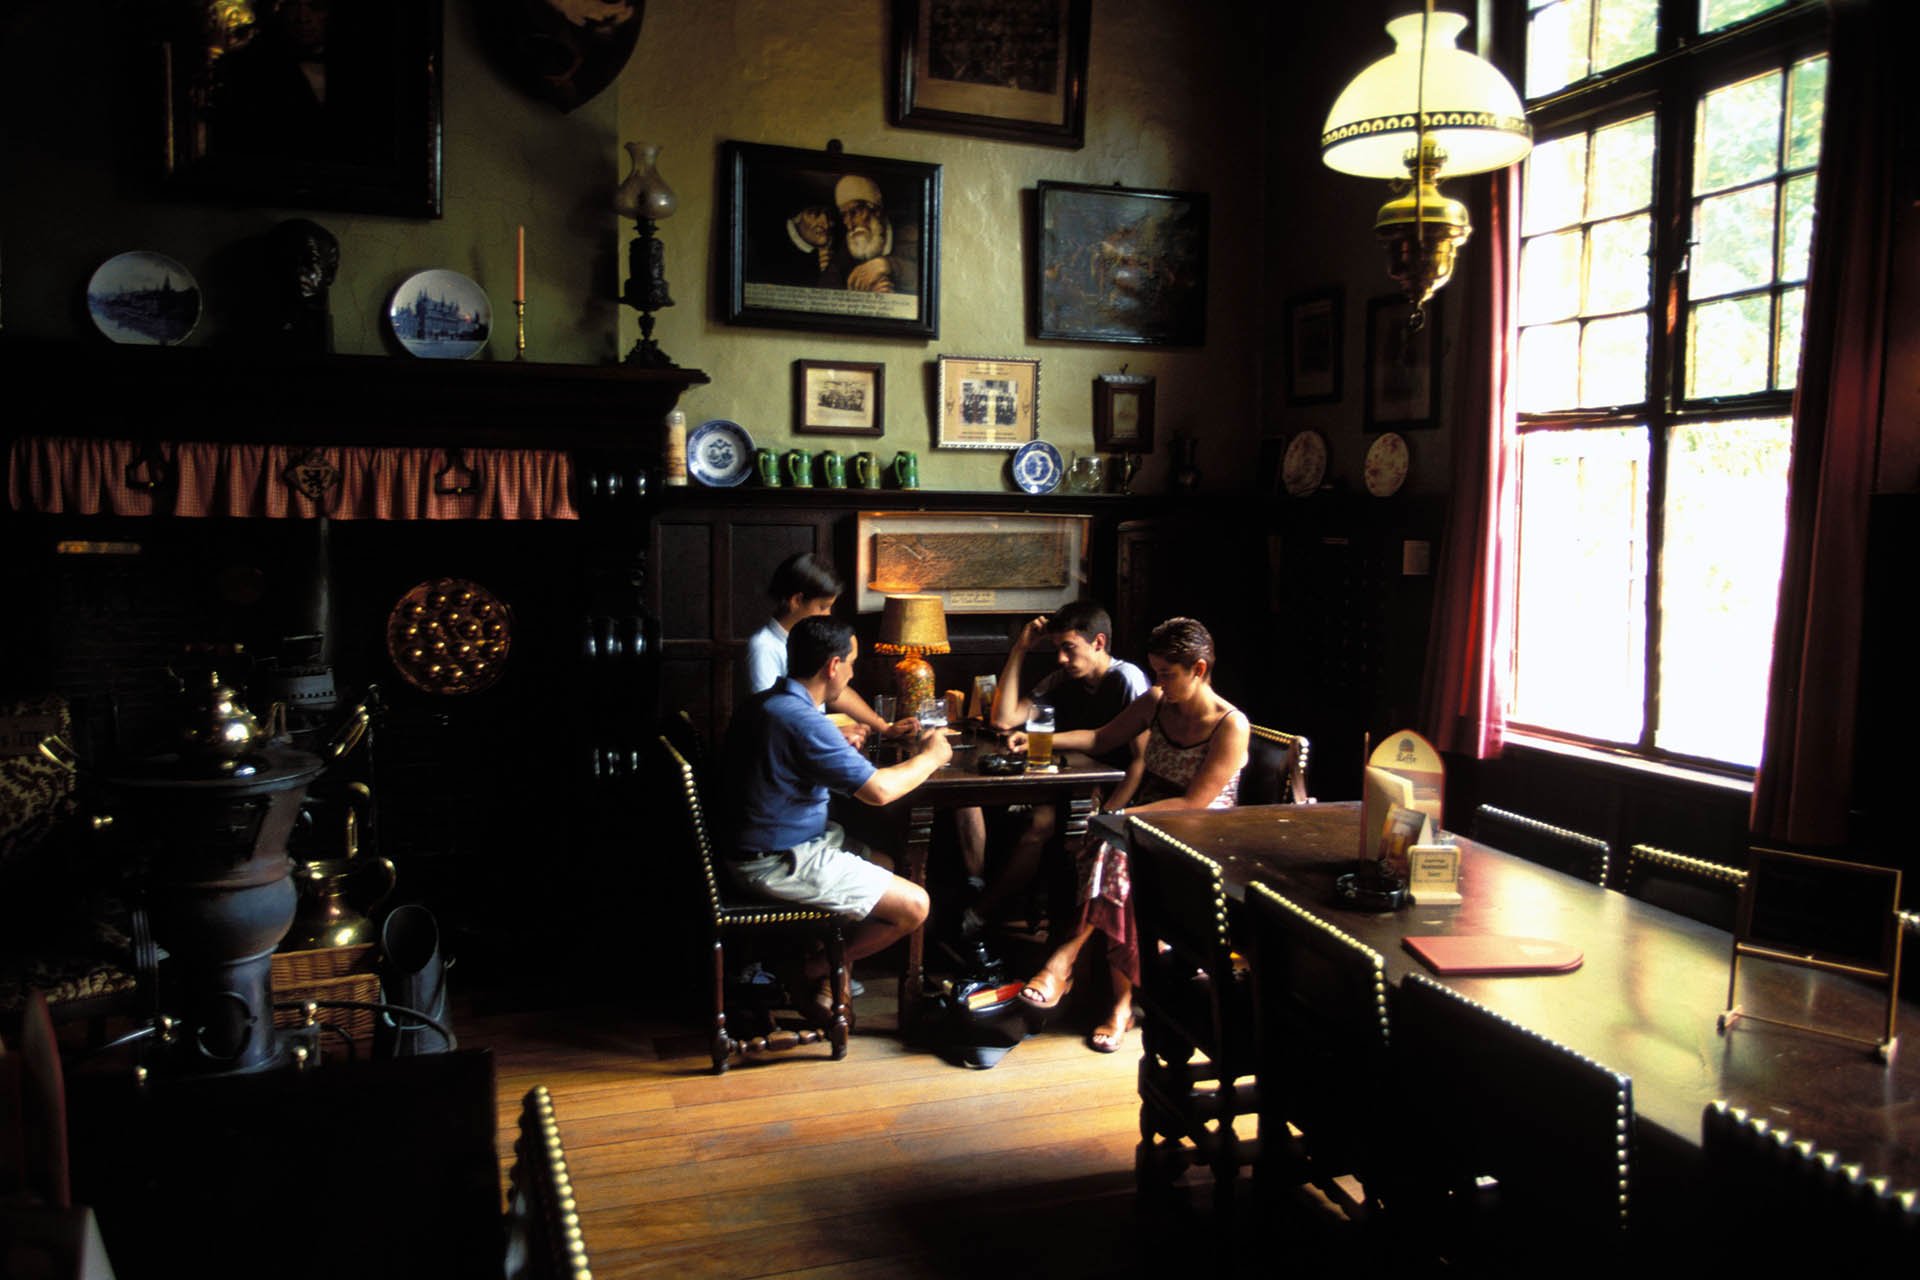 Five Of The World's Oldest Bars, From Ireland To Mexico photo